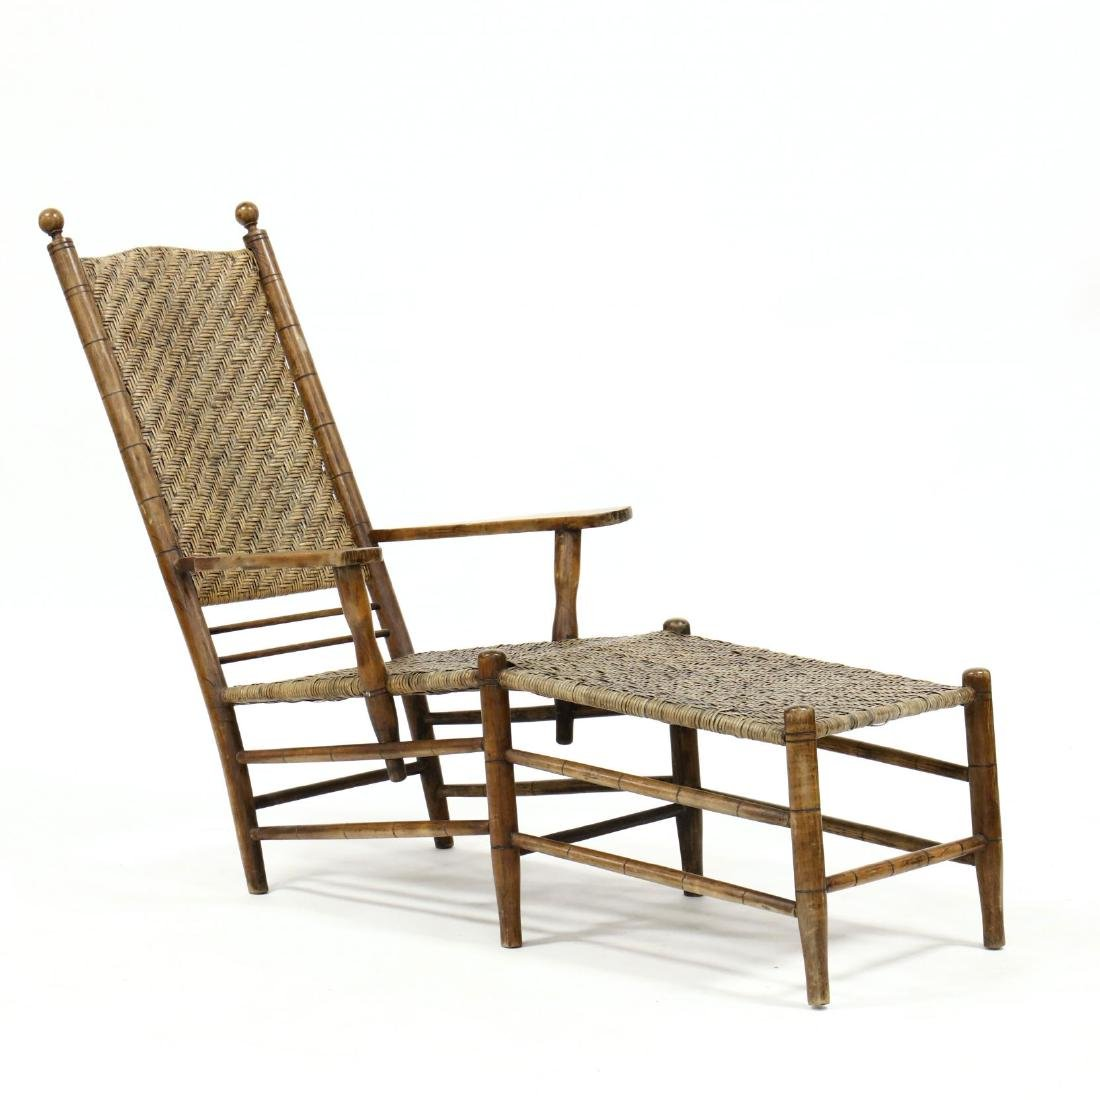 American Plantation Lounge Chair